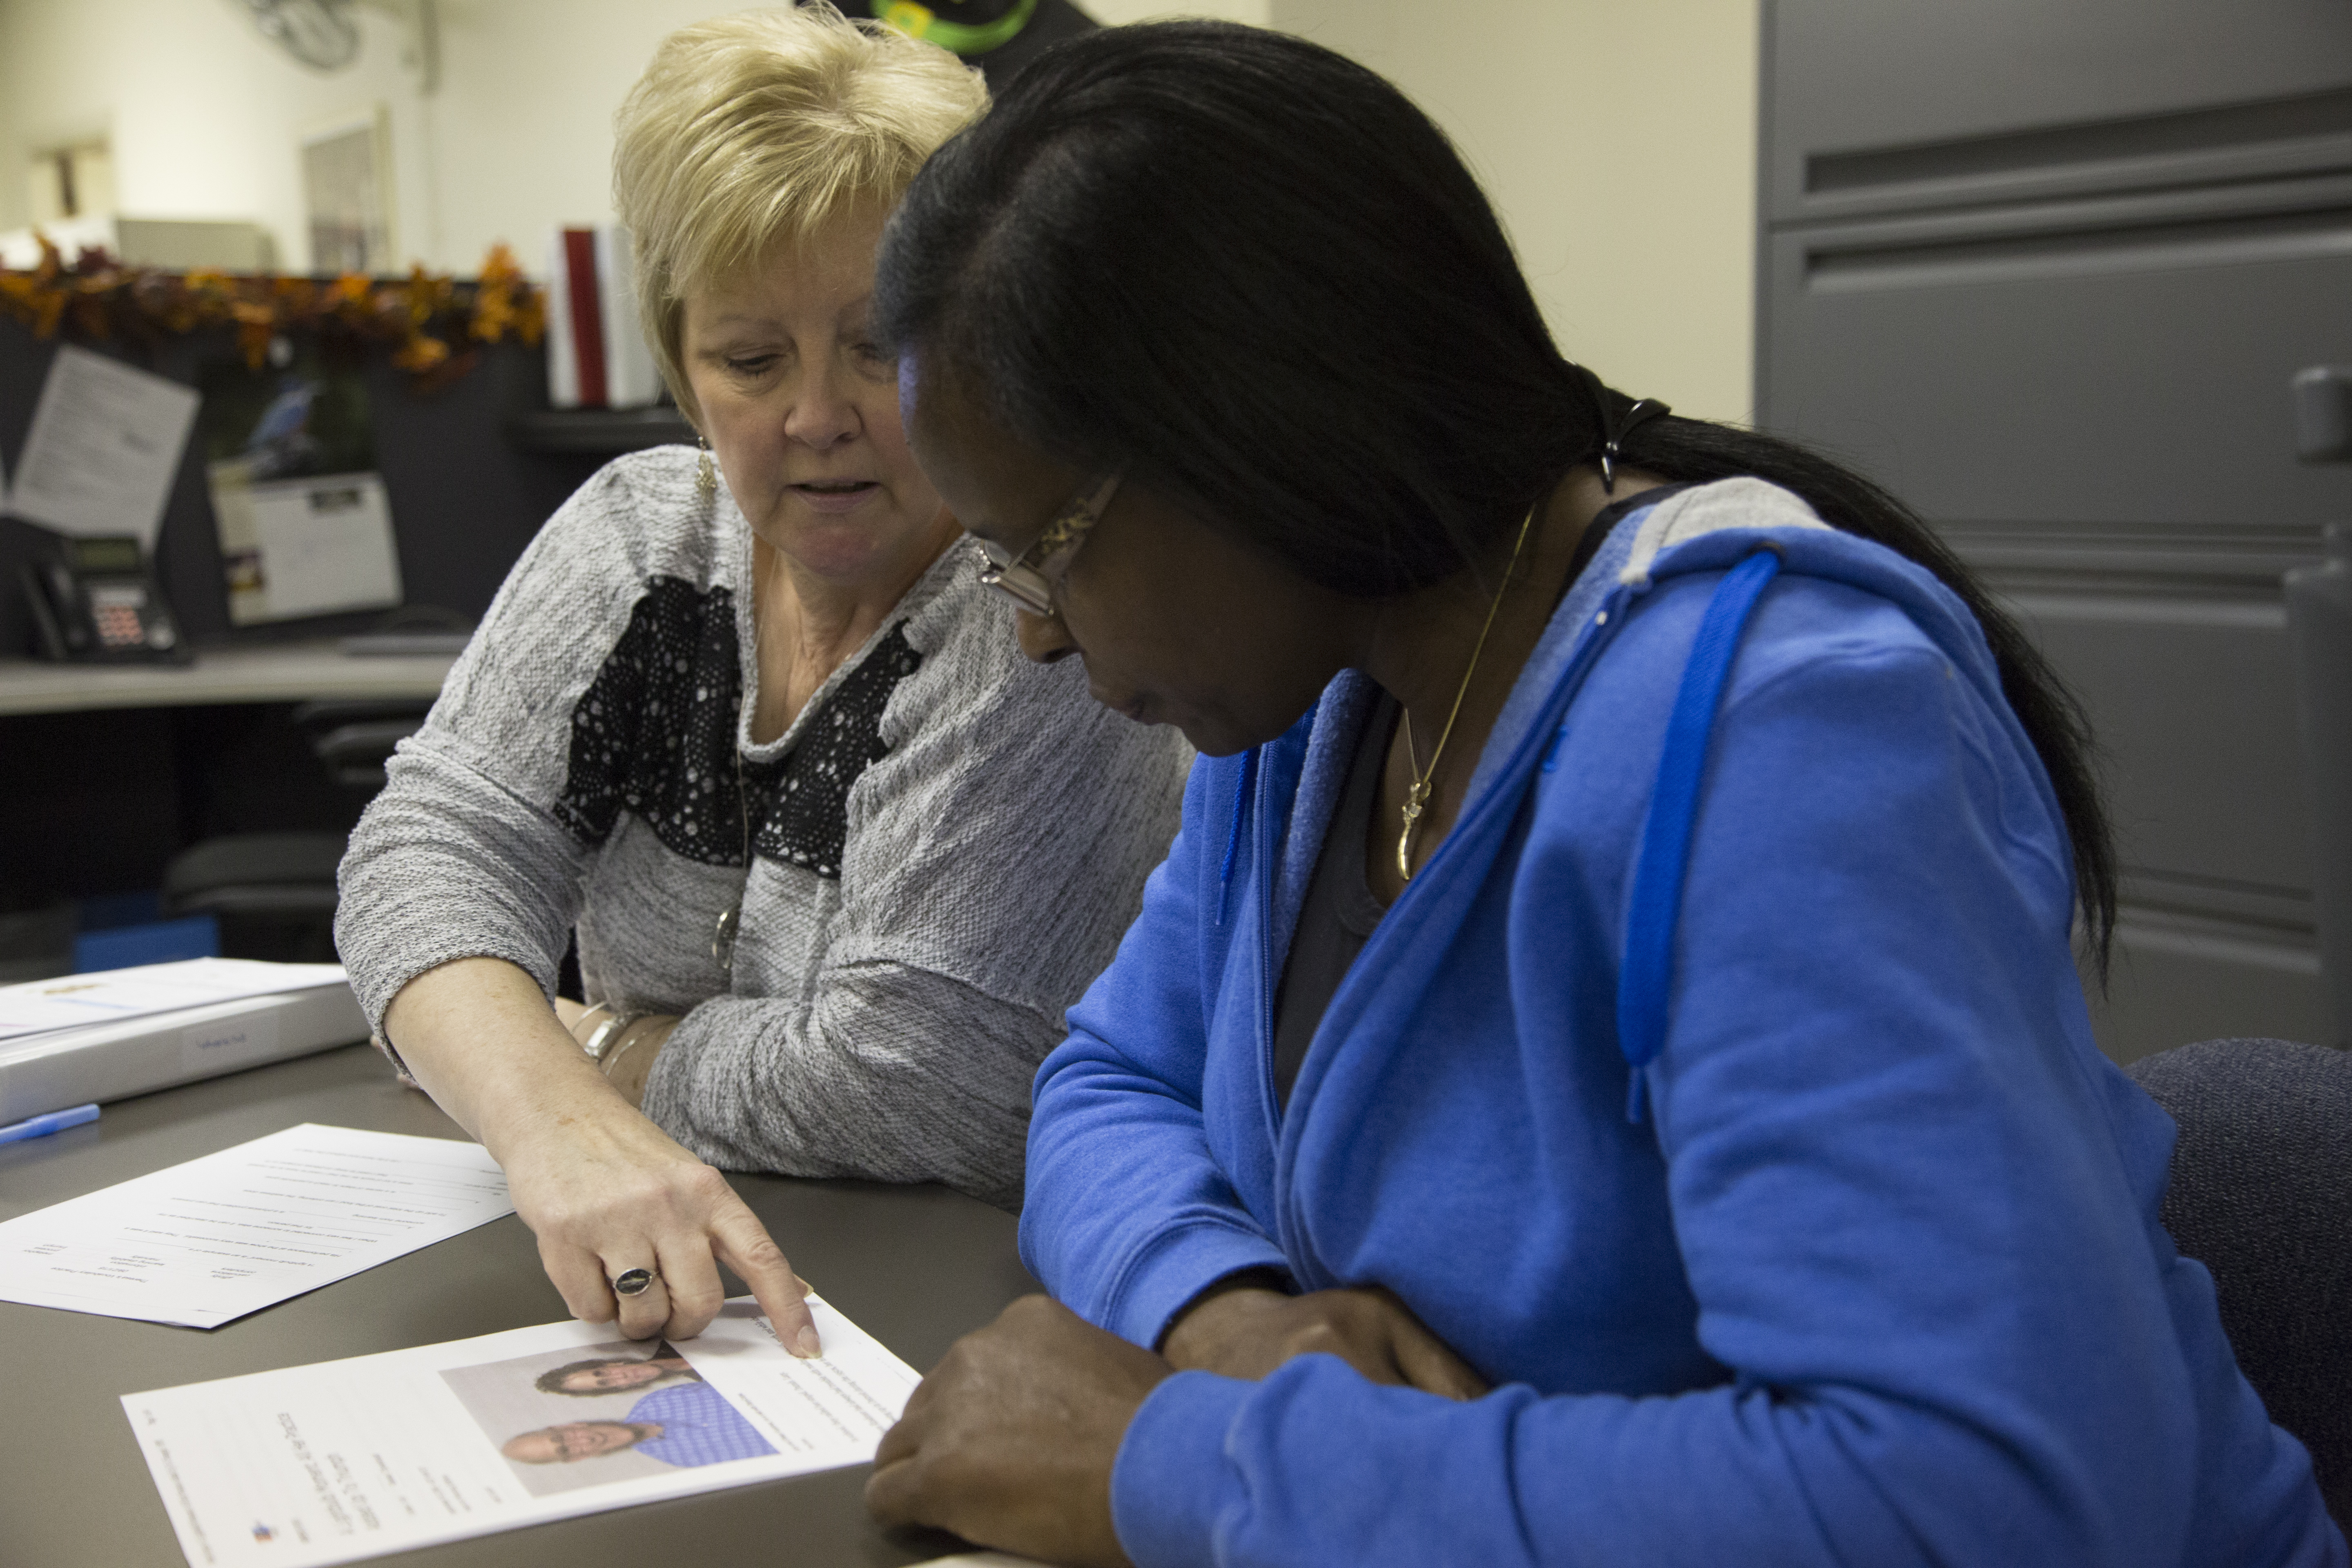 Marsha Tait, executive director of LiteracyCNY, helps Theresa Holden, 52, with a challenging word during the pair's weekly tutoring session. | Shweta Gulati, Staff Photo